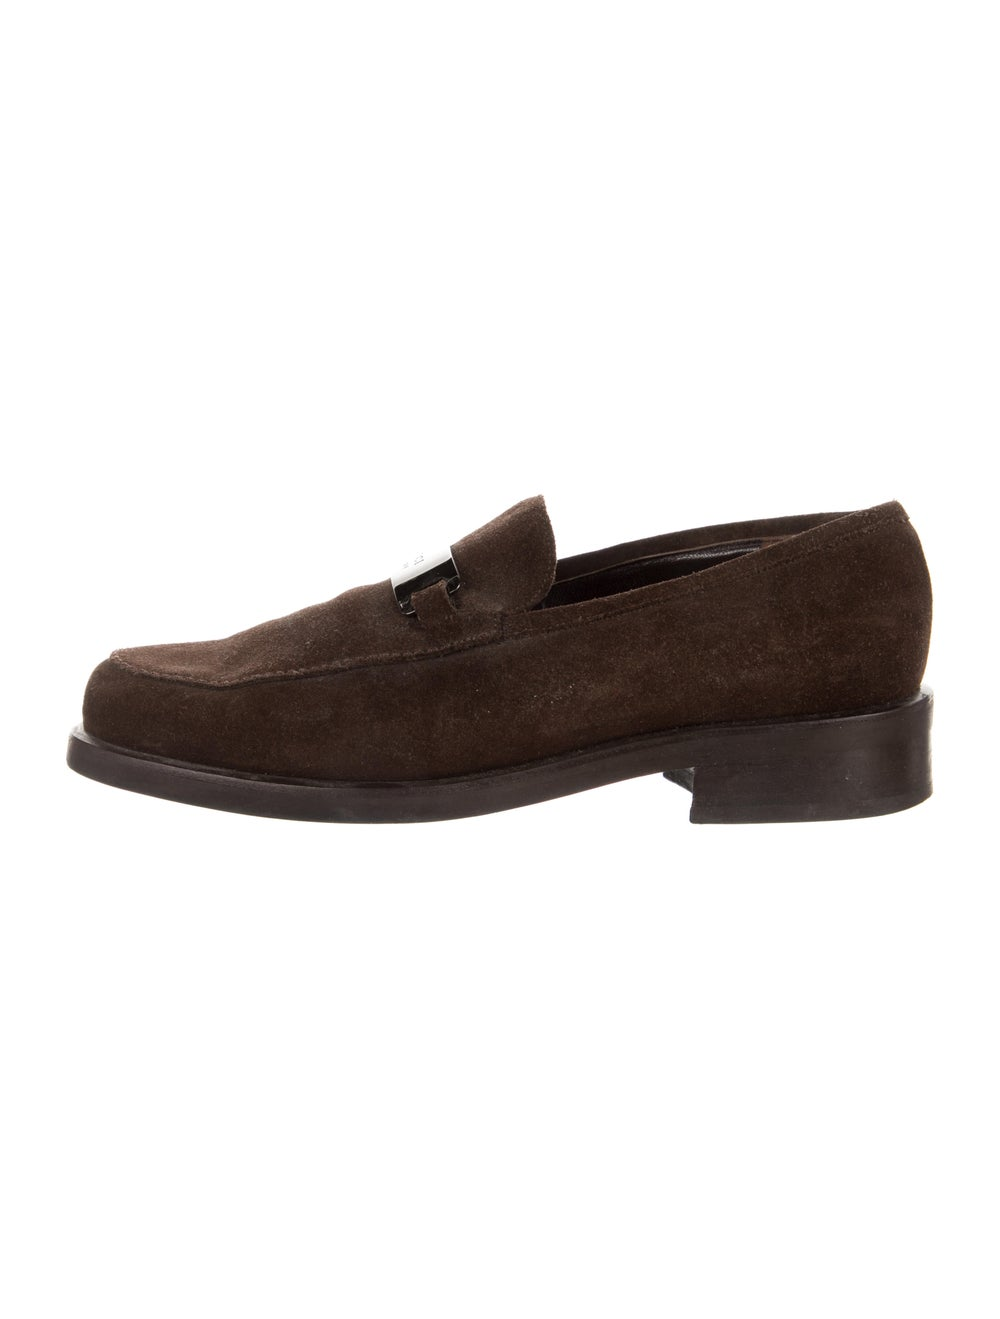 Gucci Suede Loafers Brown - image 1